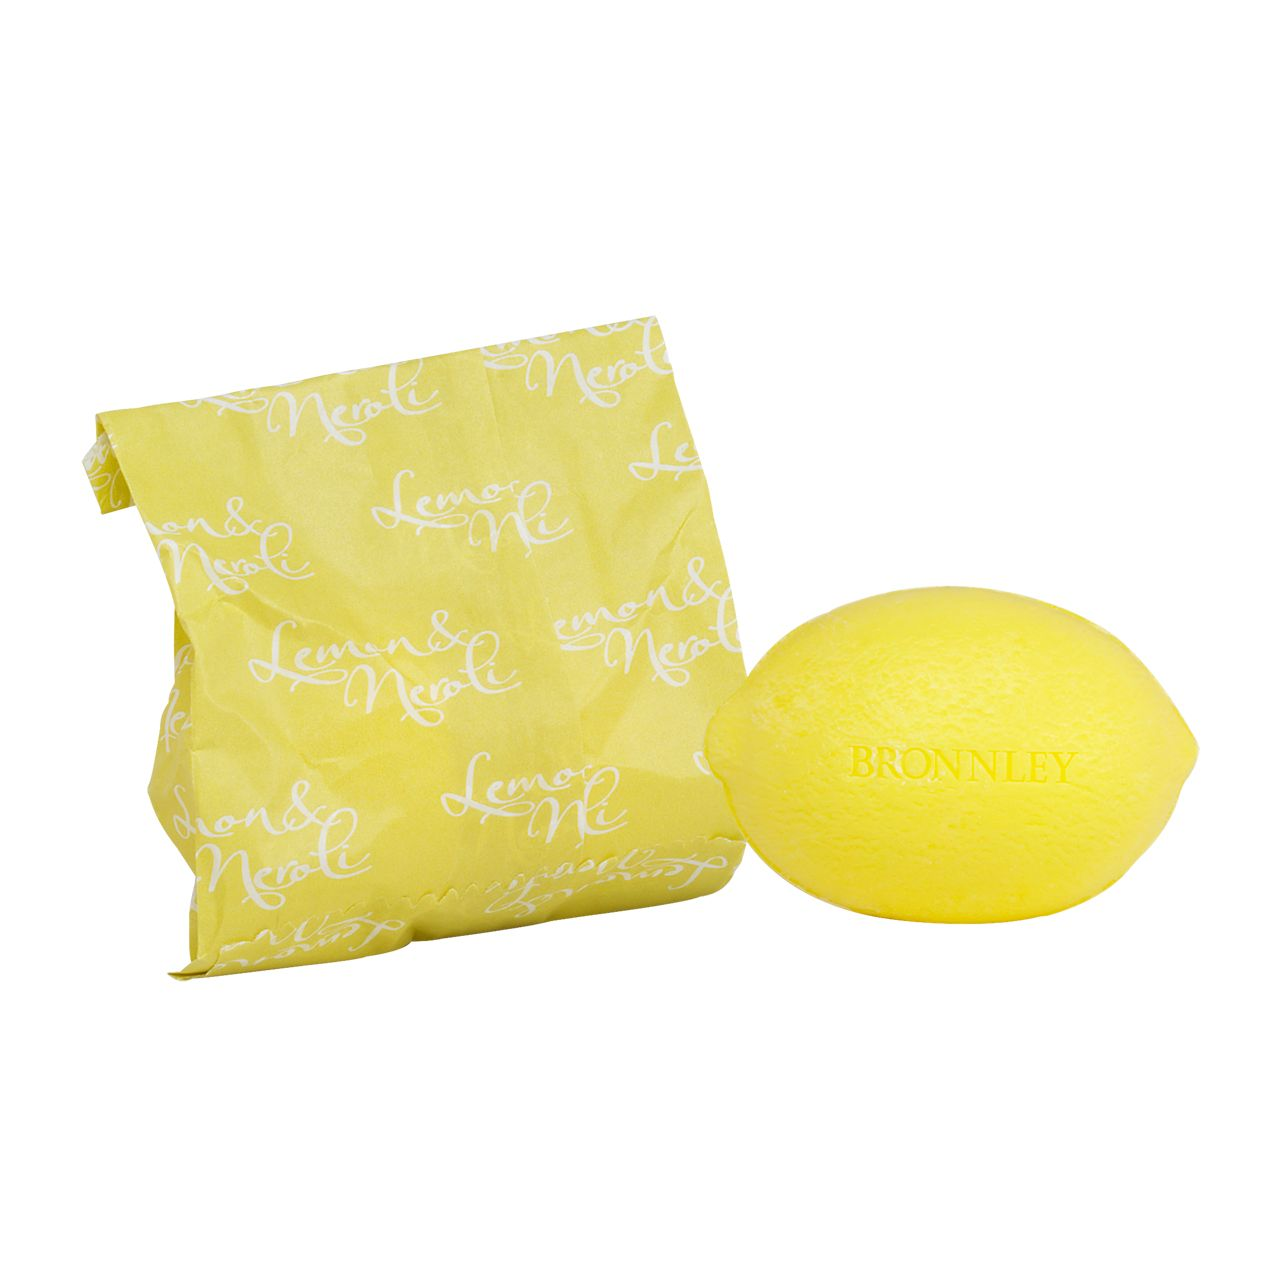 Lemon and Neroli 1x100g Soap